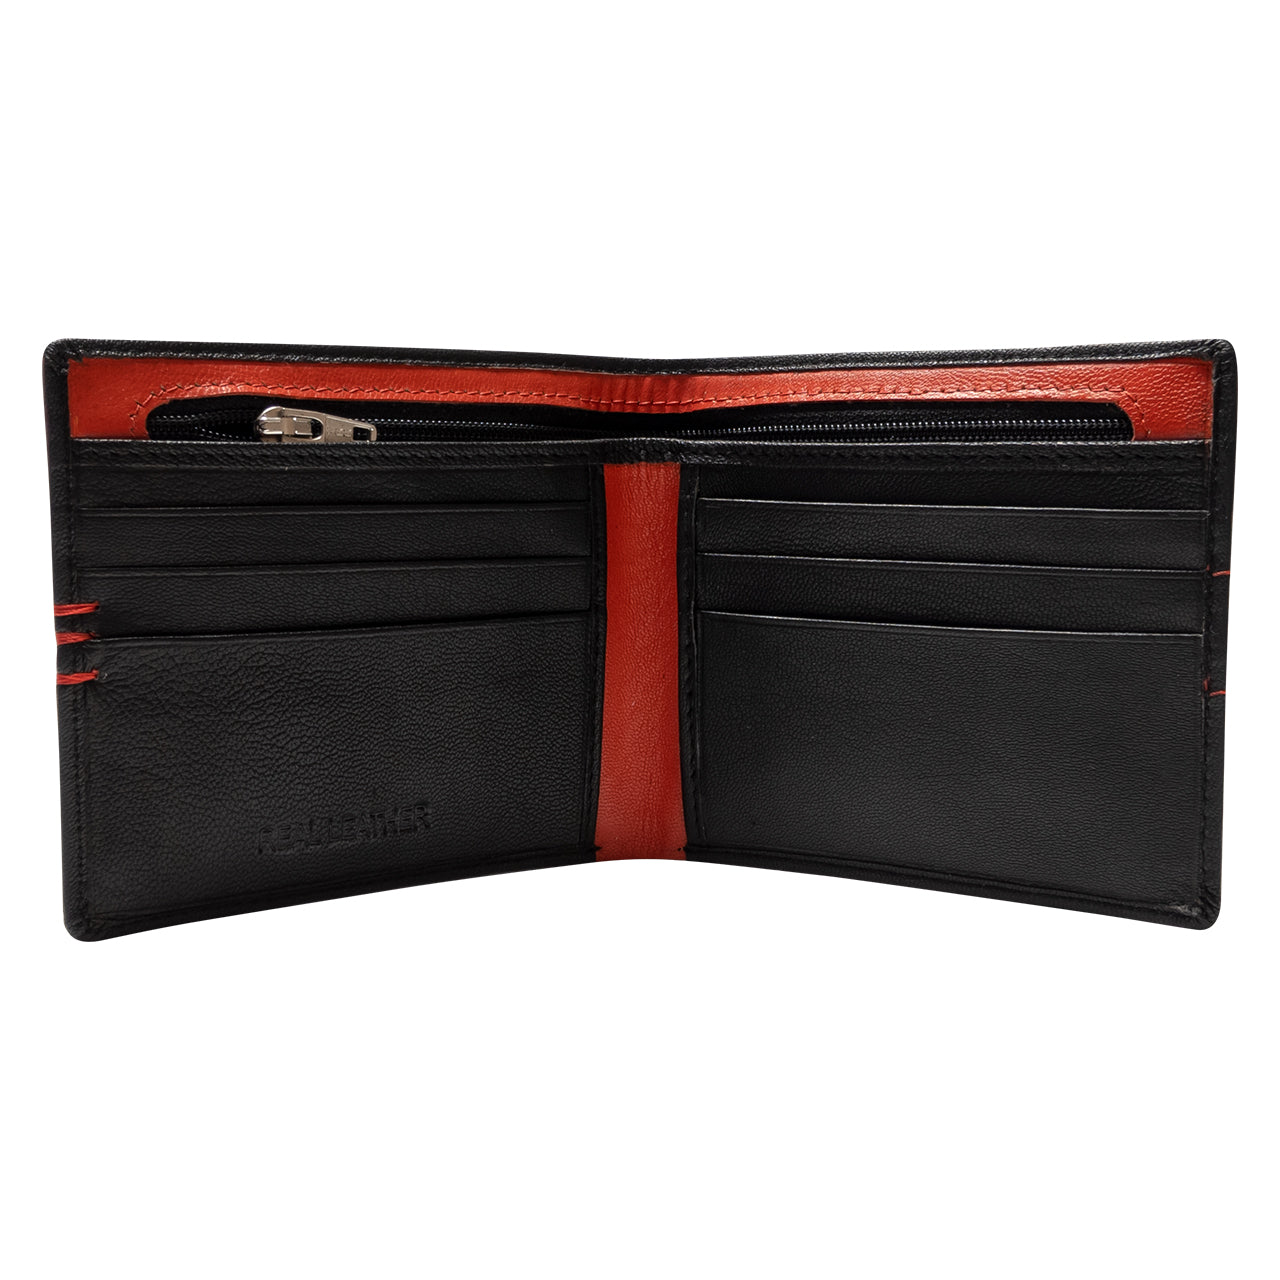 NFFC Black Stitch Leather Wallet